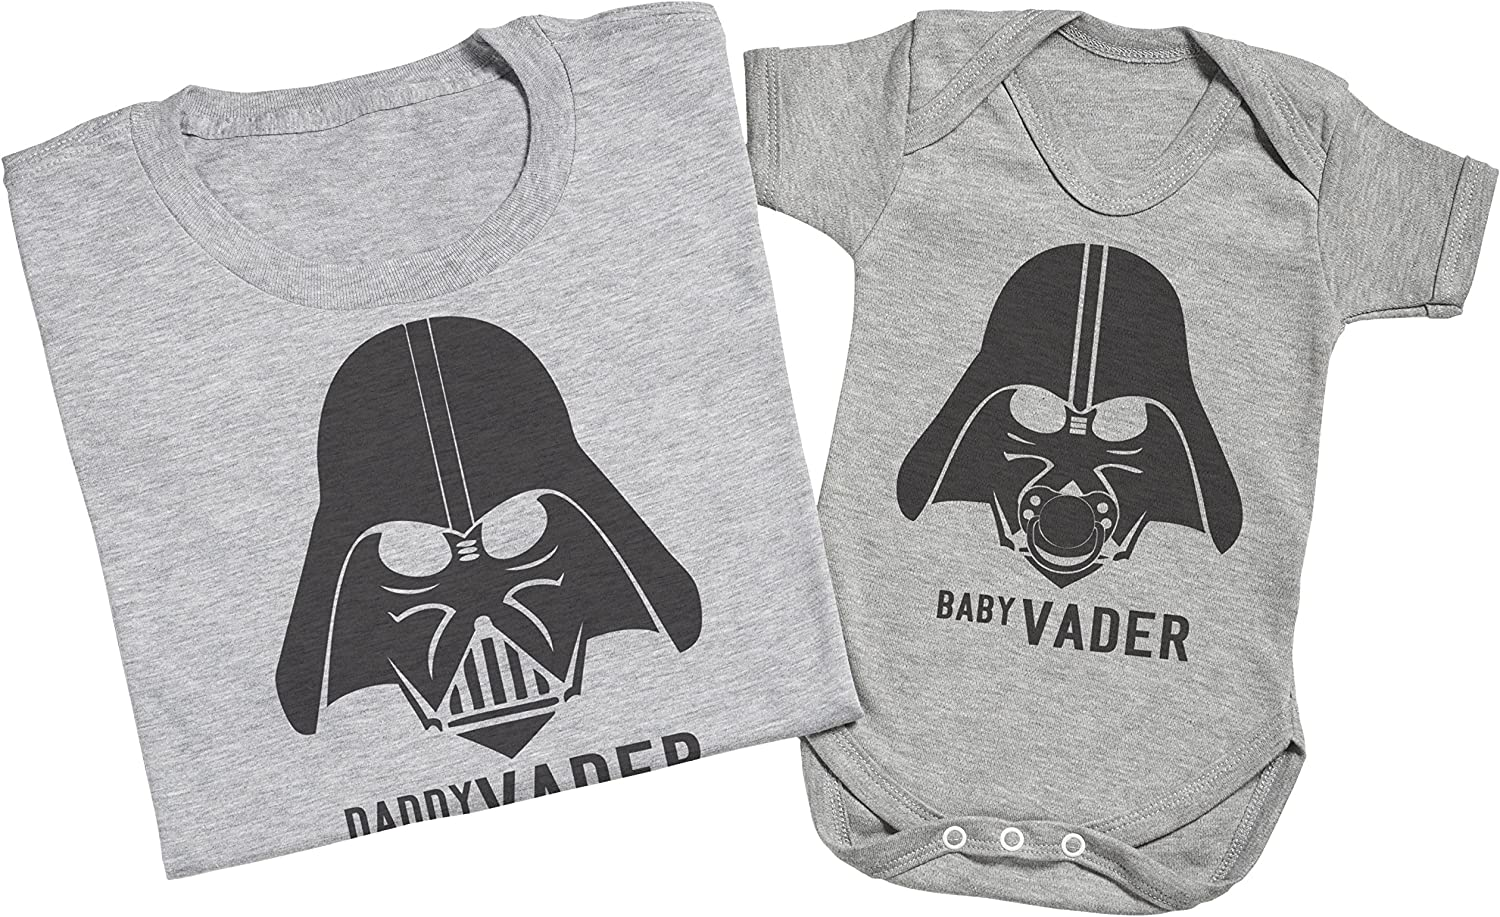 Matching Father Baby Gift Set Zarlivia Clothing Baby Vader /& Daddy Vader Mens T Shirt /& Baby Bodysuit